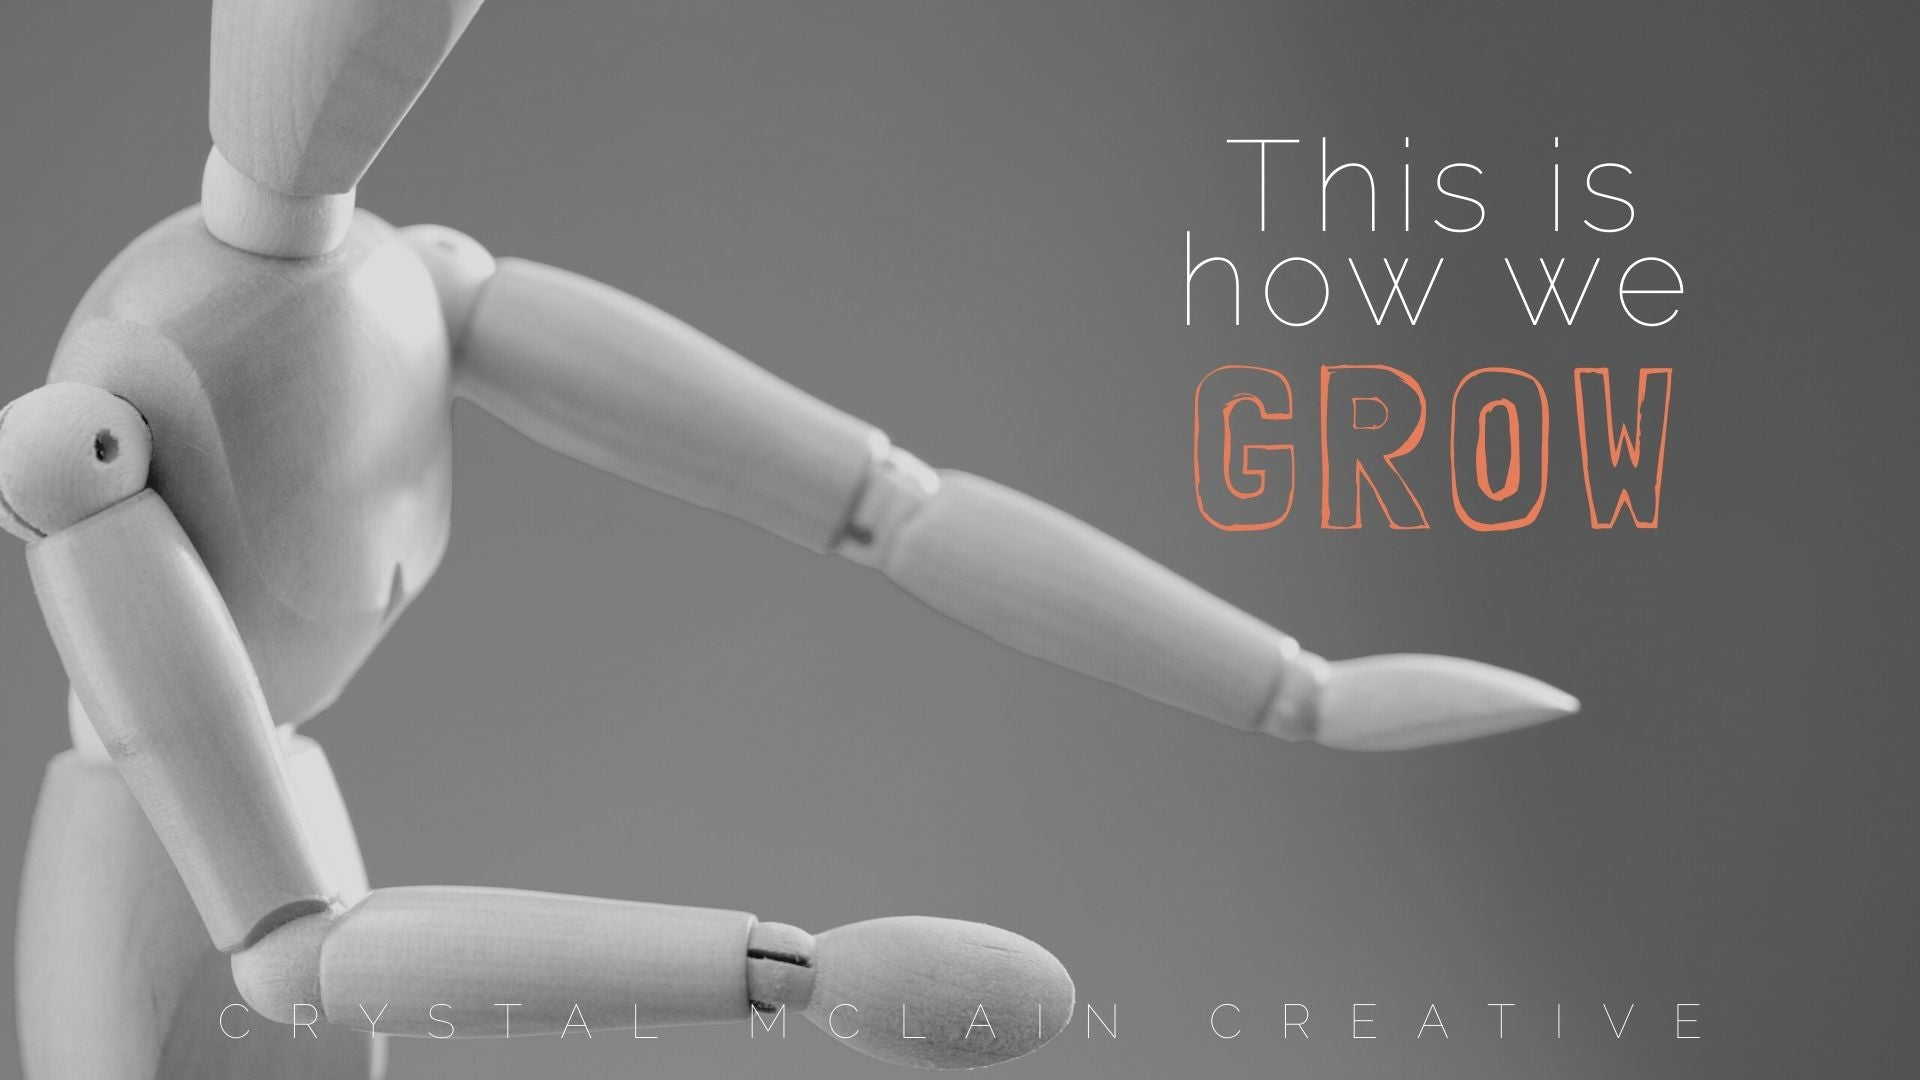 THIS IS HOW WE GROWSELF CARE BLOG CRYSTAL MCLAIN CREATIVE